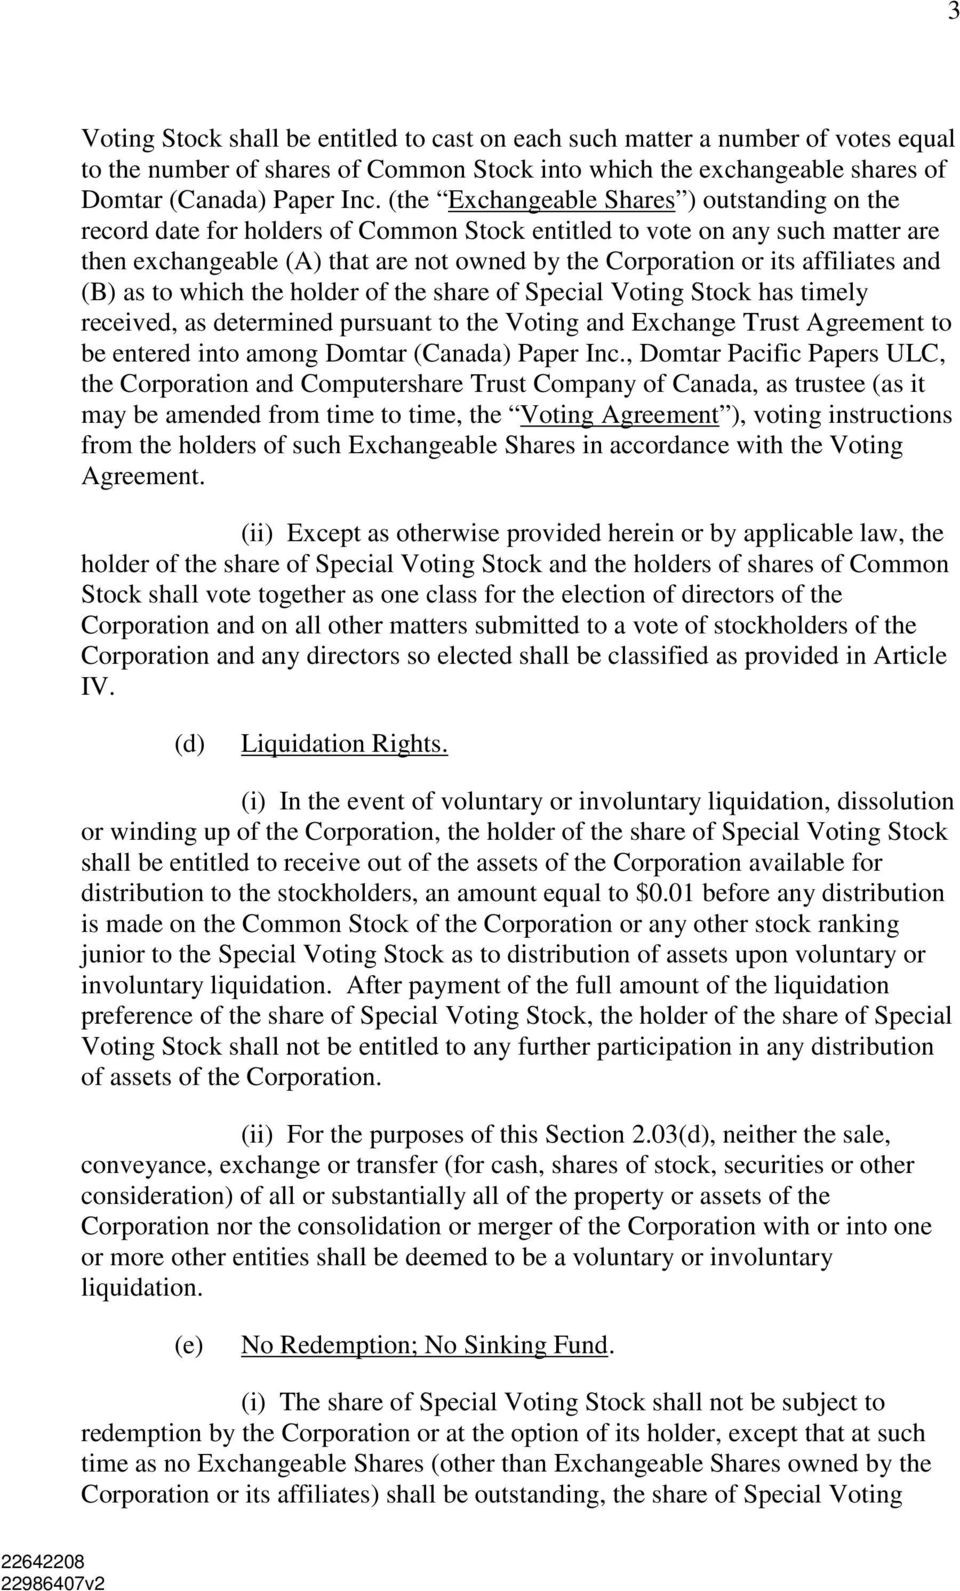 affiliates and (B) as to which the holder of the share of Special Voting Stock has timely received, as determined pursuant to the Voting and Exchange Trust Agreement to be entered into among Domtar